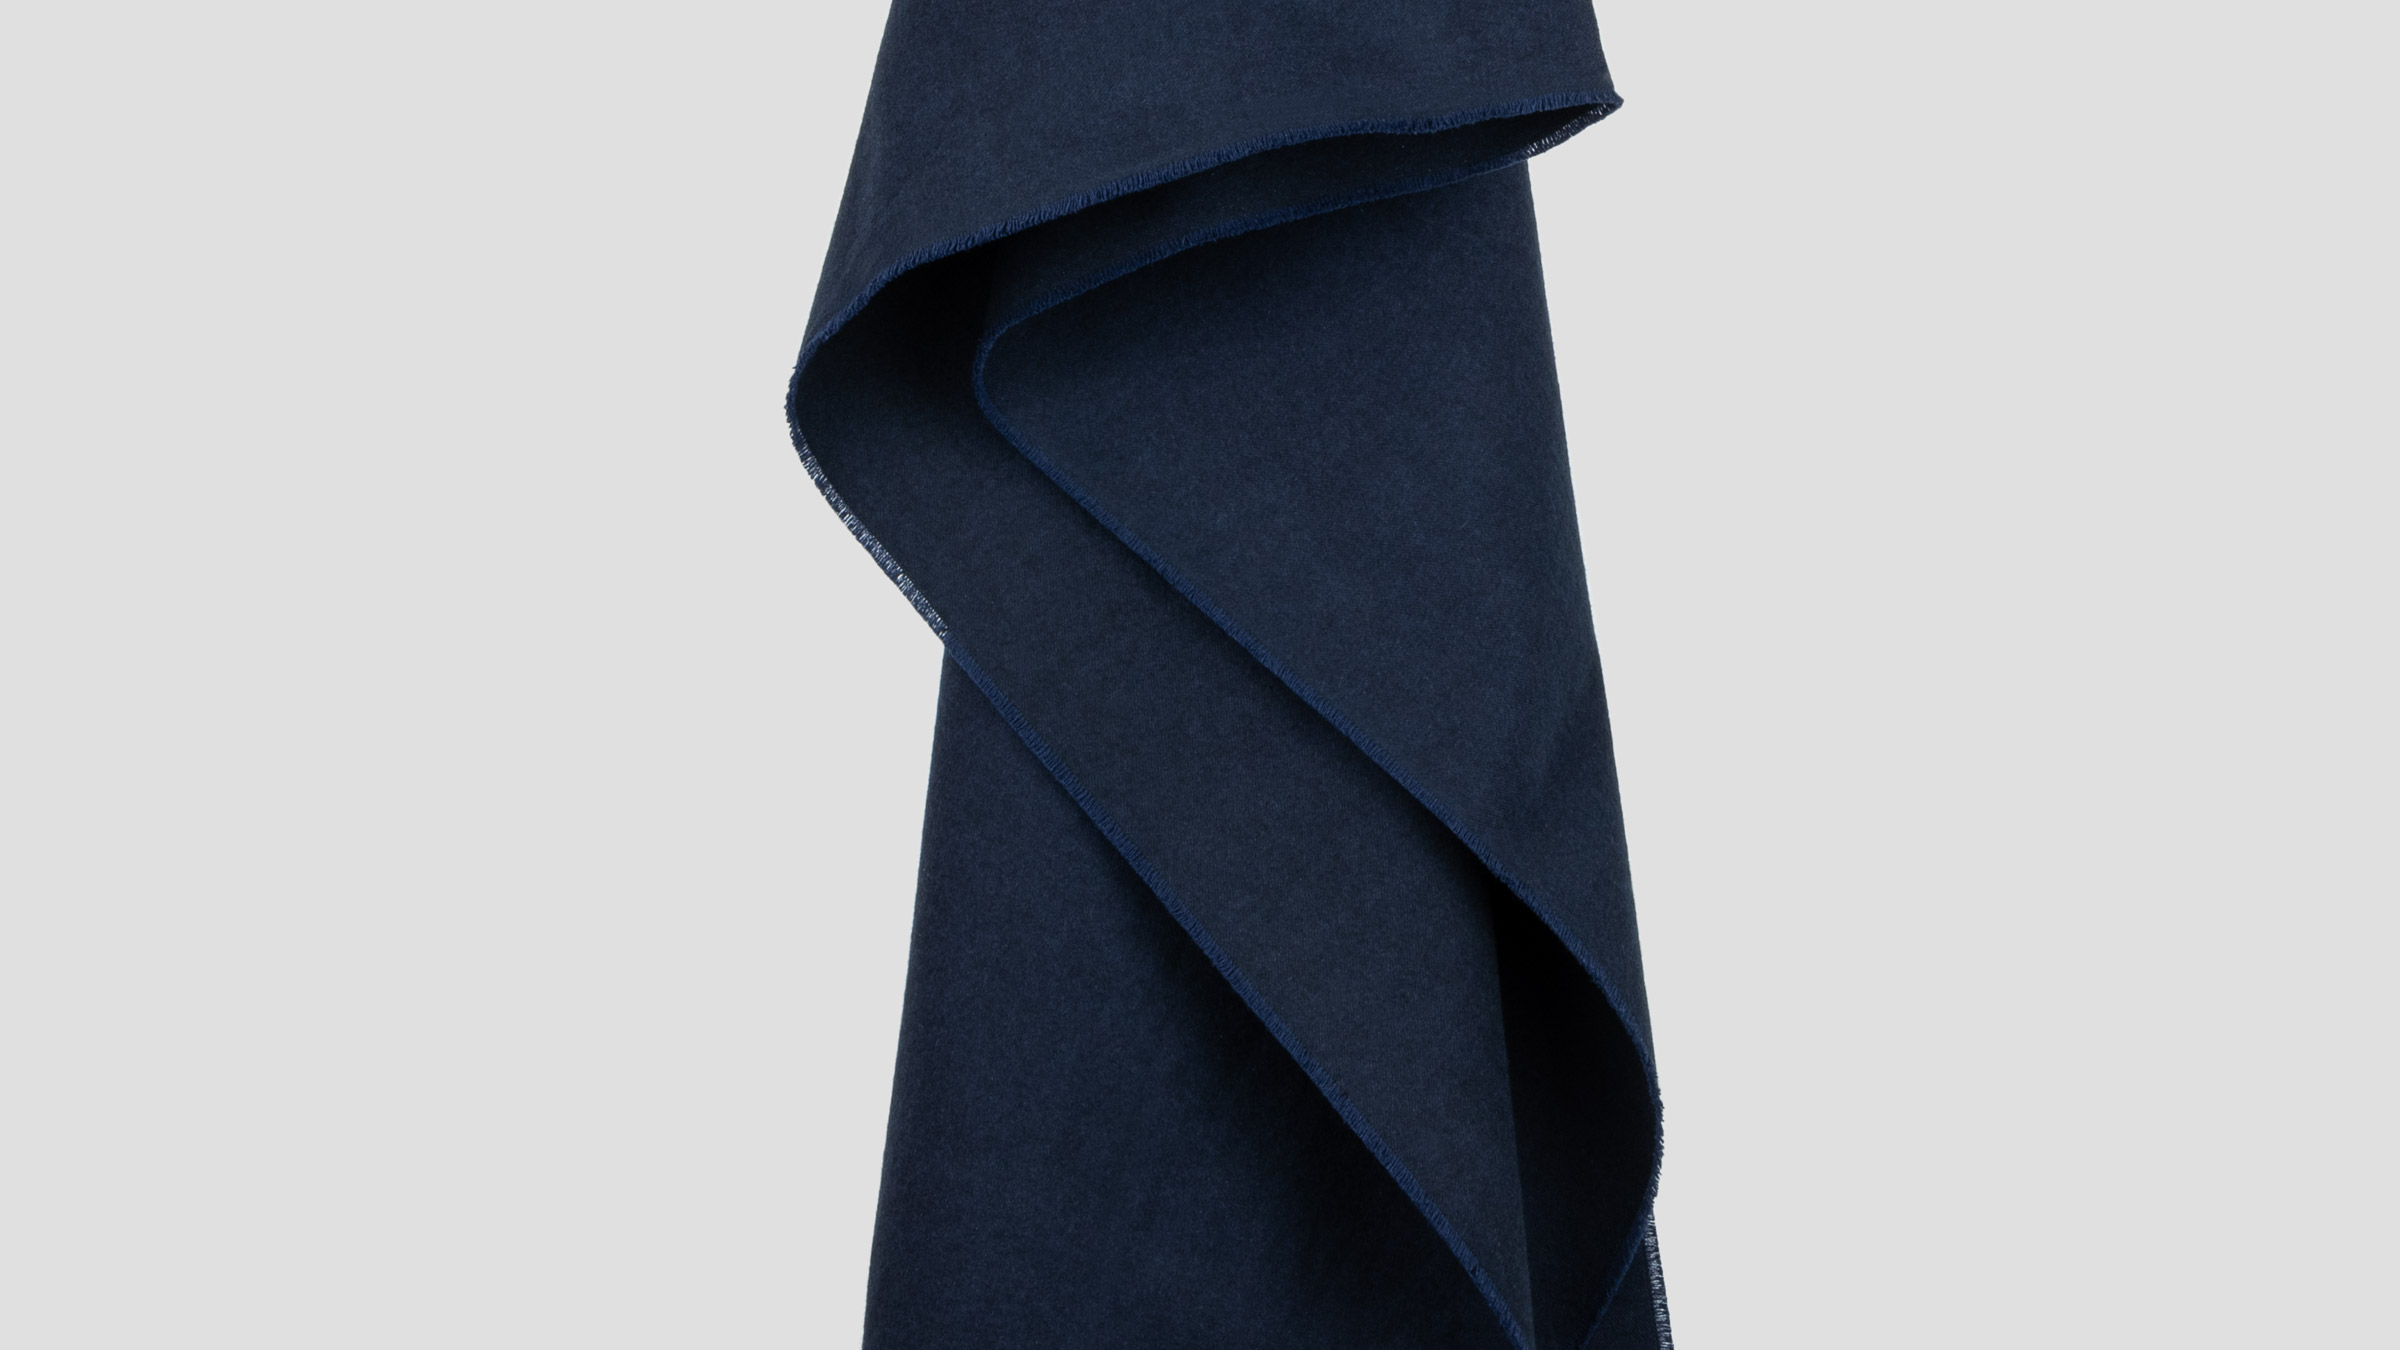 niels-heineman-filip-scarf-navy-black-marl-materials